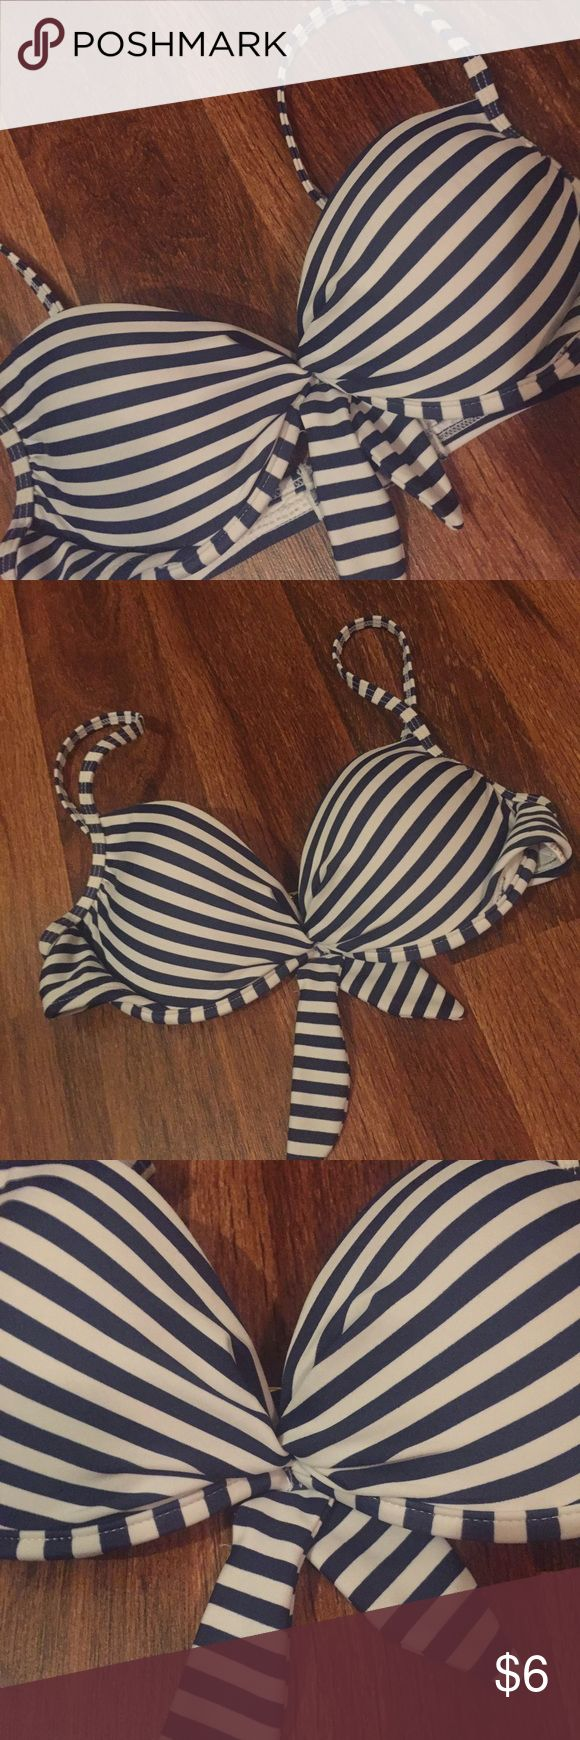 Striped swimsuit top. Navy and white stripped swimsuit top with straps and bow in center. Xhilaration Swim Bikinis